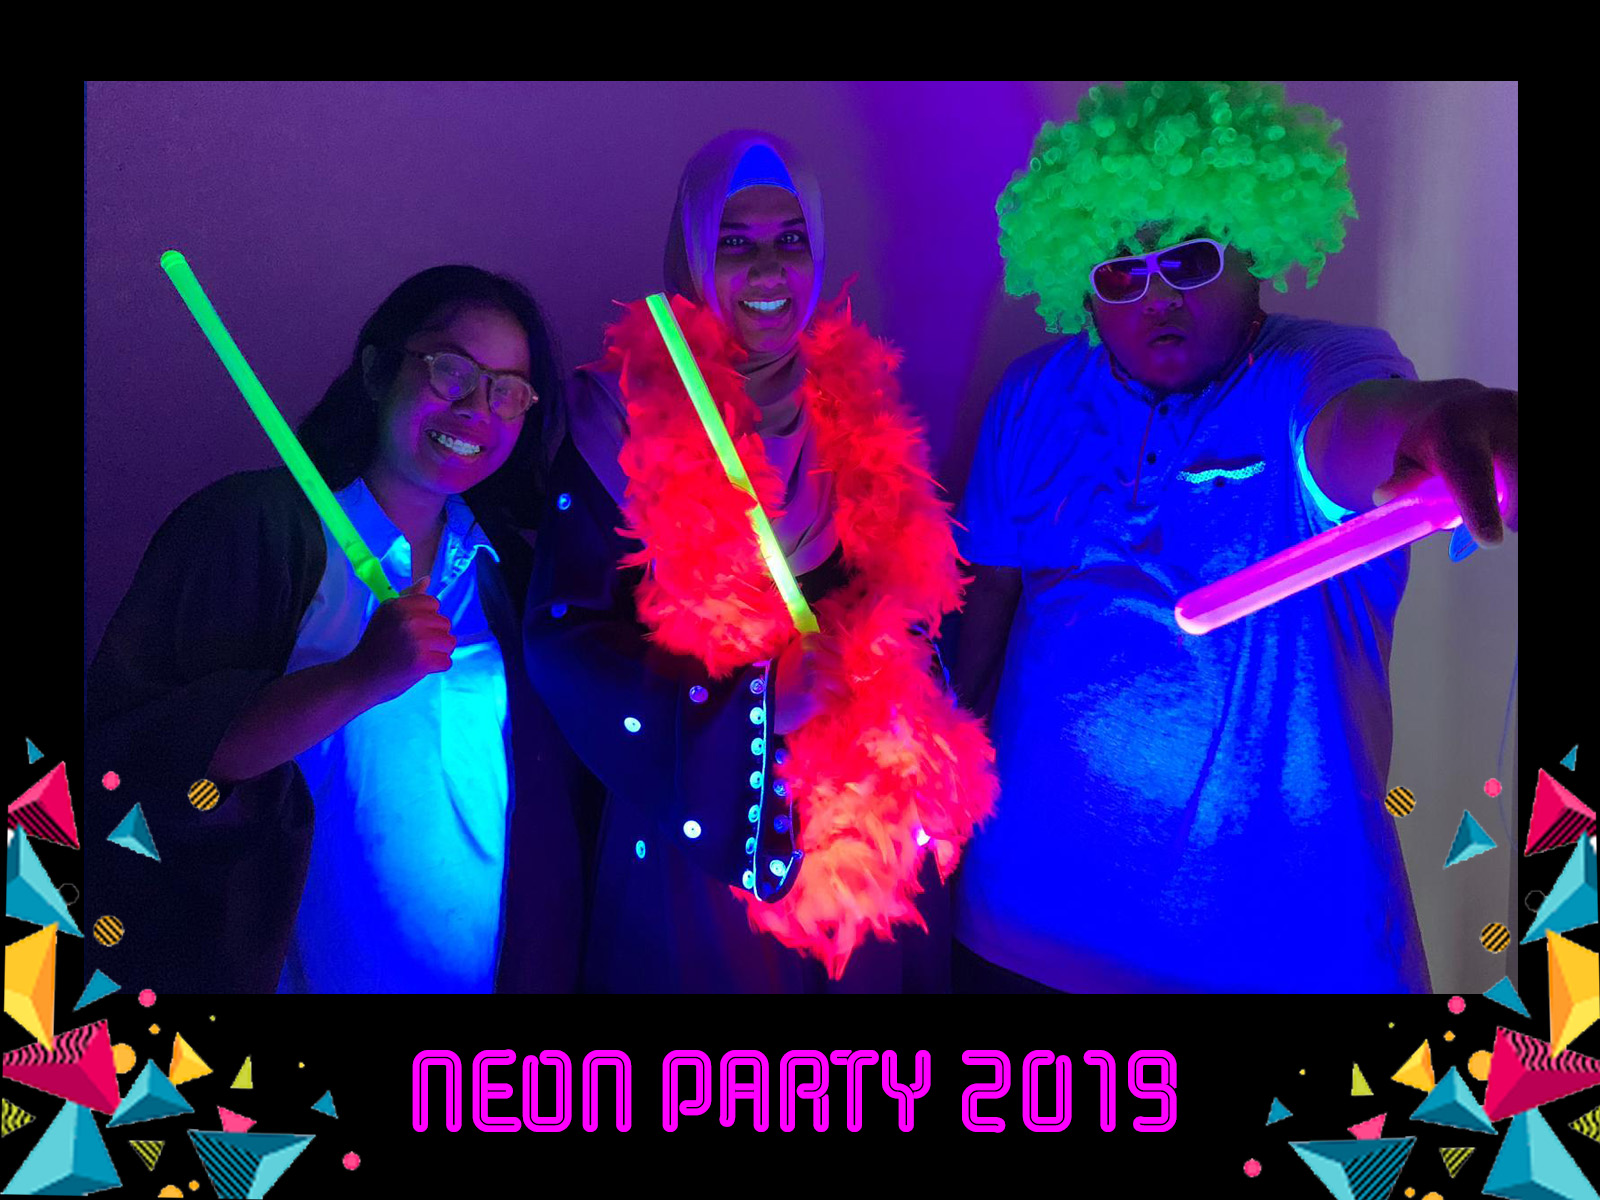 uv glow photo booth